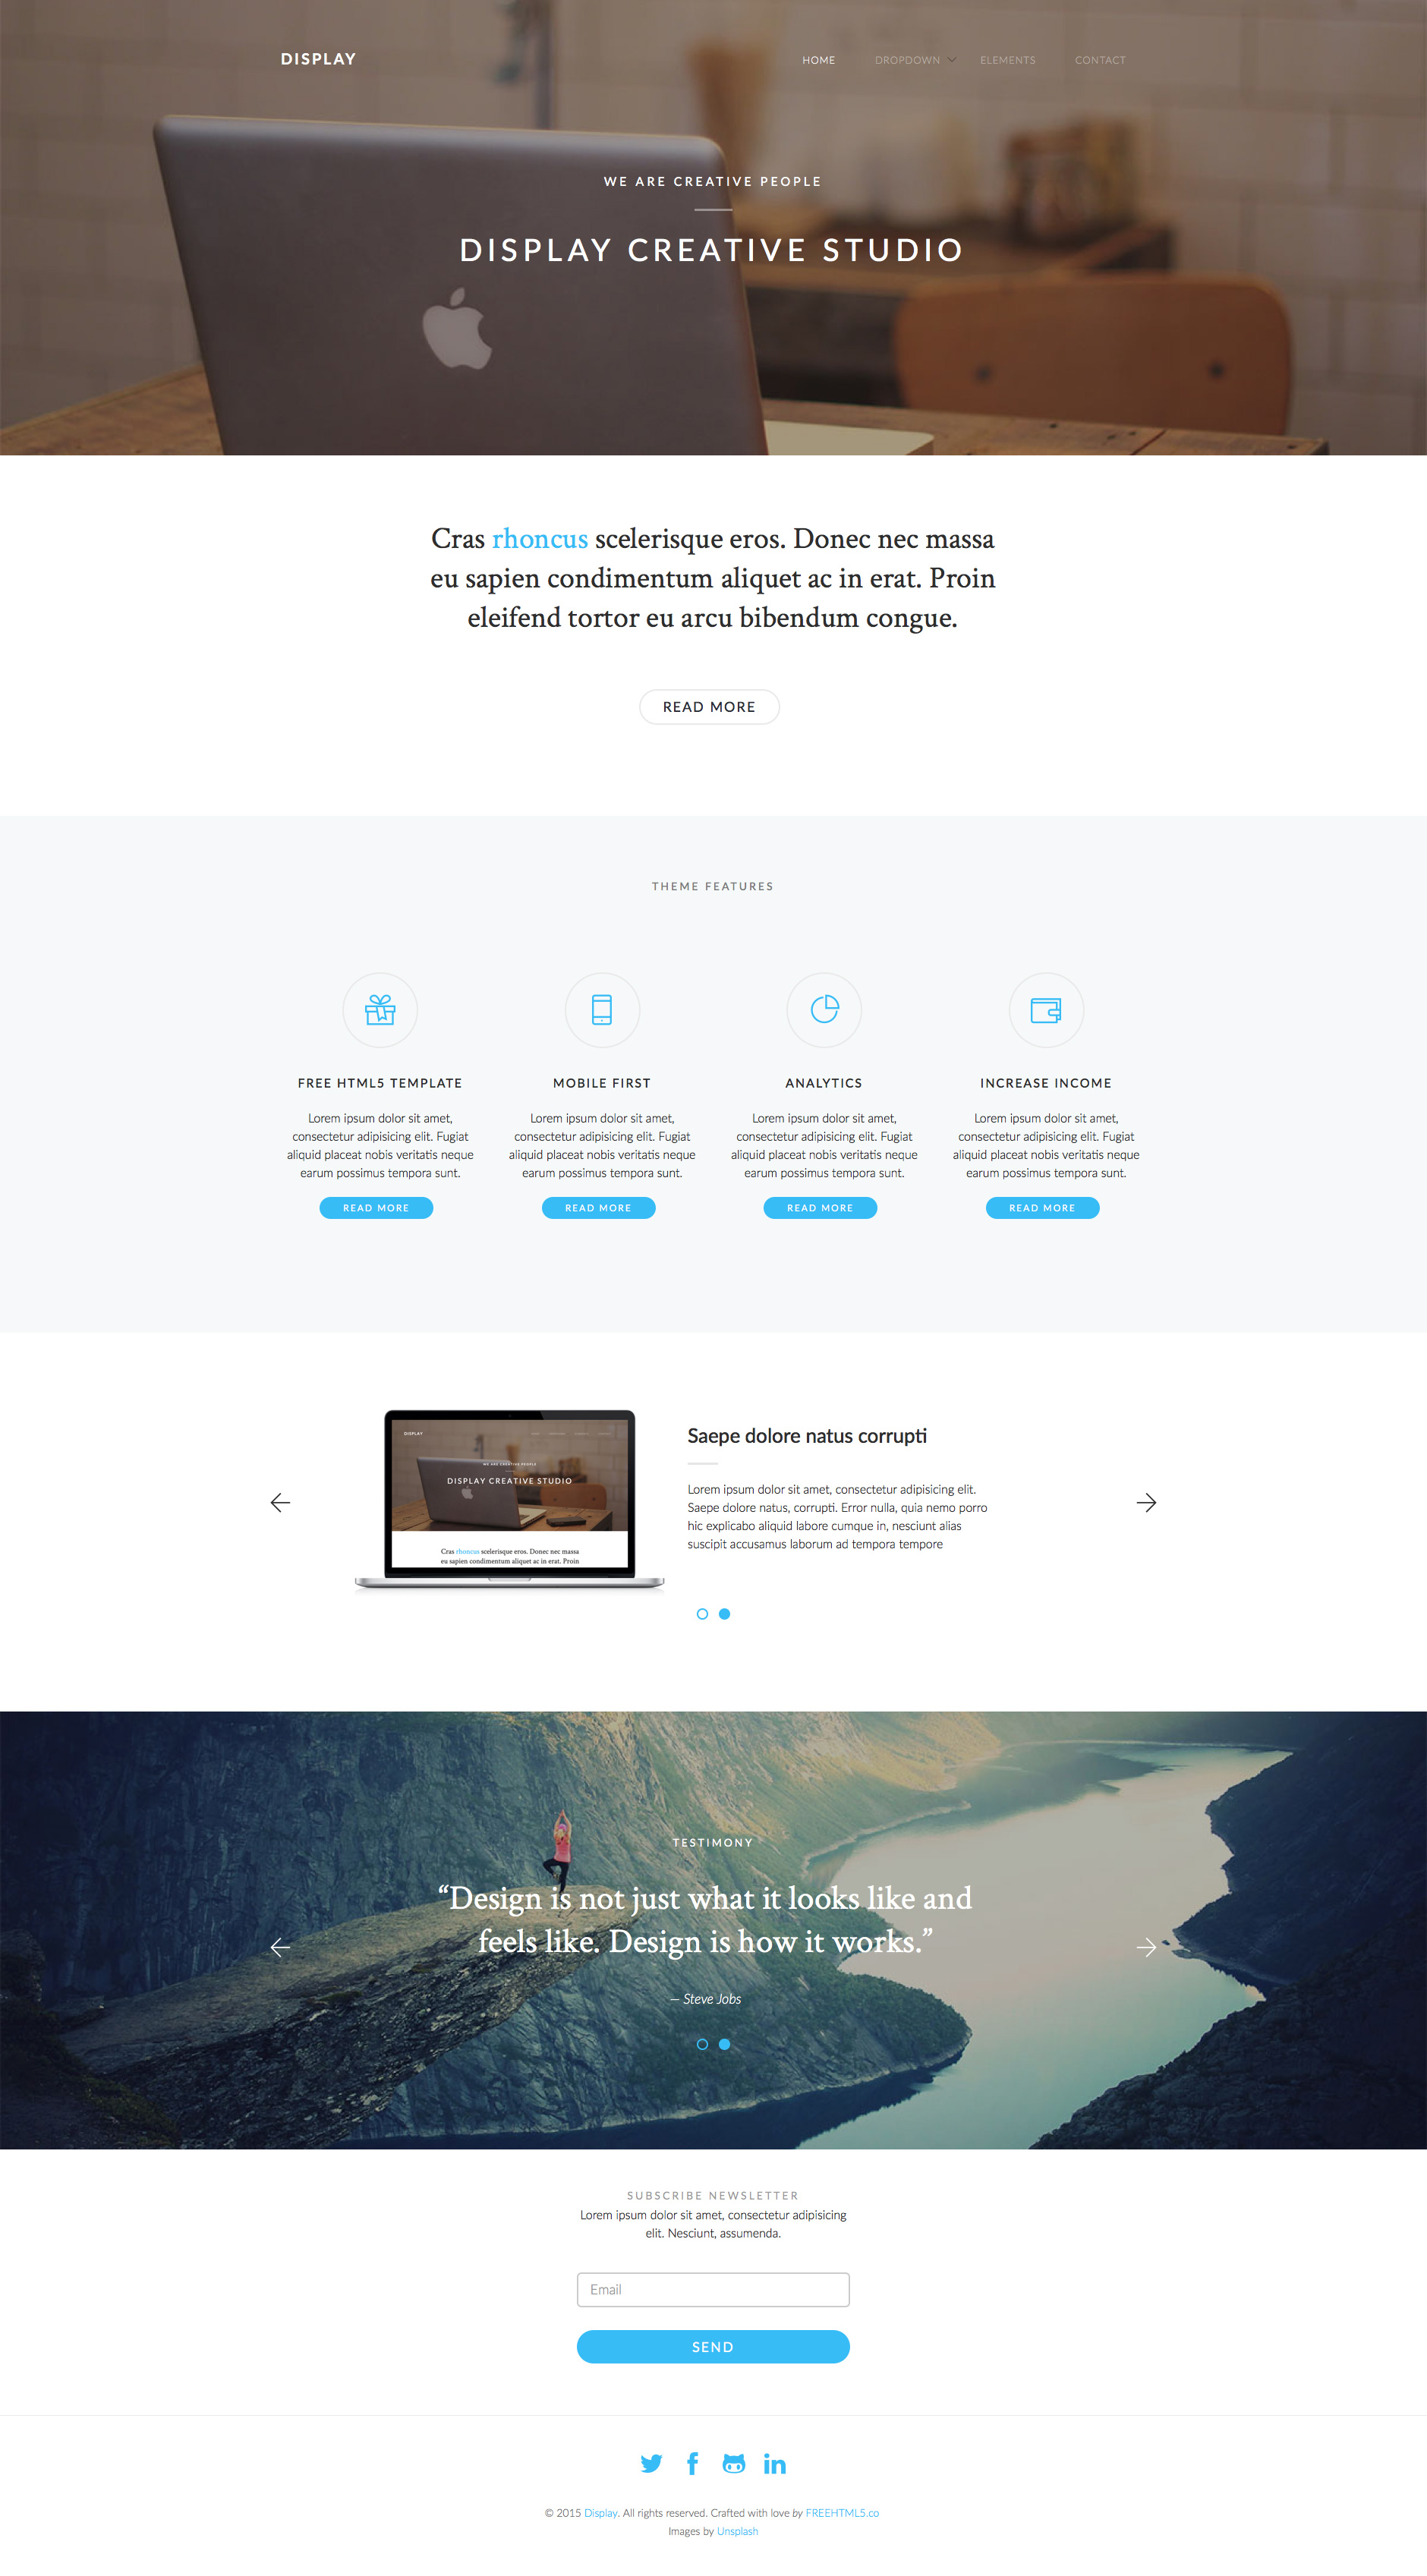 Display is a free responsive HTML5 Bootstrap business website template using Bootstrap 3. This template is the perfect choice for any creative studio, business, corporate or for portfolio. Display template is fully responsive, retina ready and built on the popular Bootstrap 3 framework.